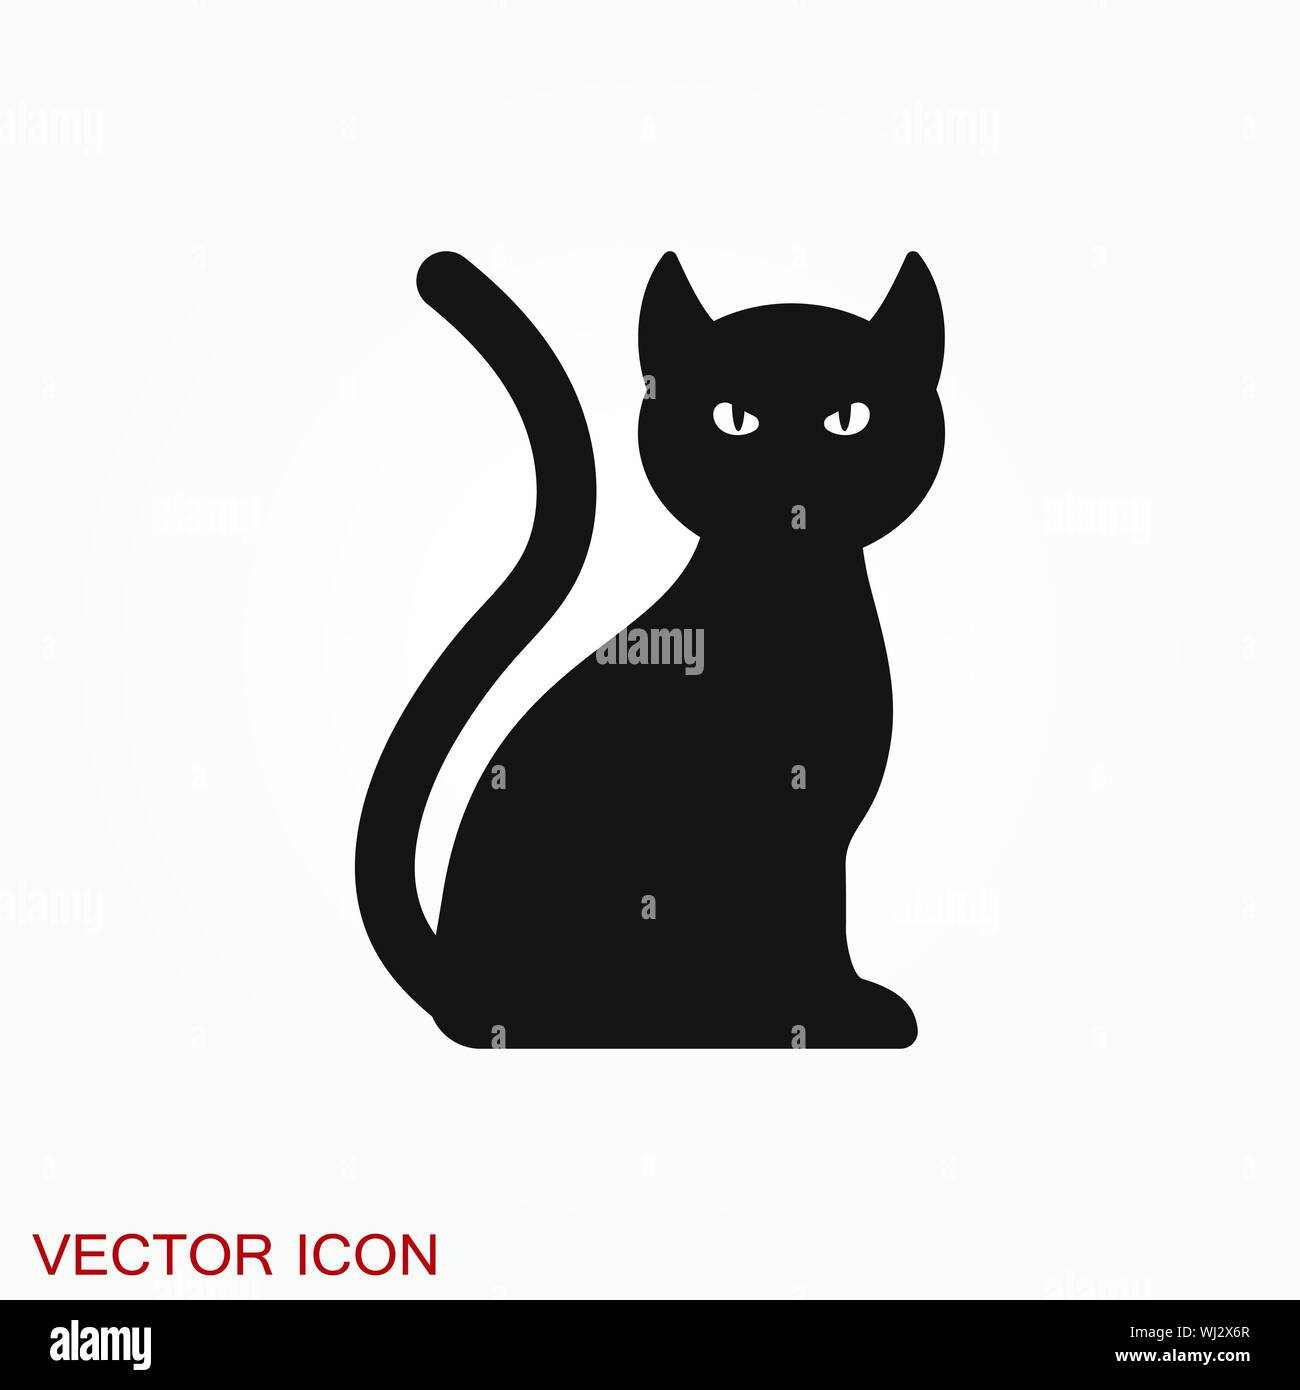 Cat Icon Logo Design Vector Template Flat Style Stock Vector Image Art Alamy Choose from over a million free vectors, clipart graphics, vector art images, design templates, and illustrations created by artists worldwide! https www alamy com cat icon logo design vector template flat style image269283807 html